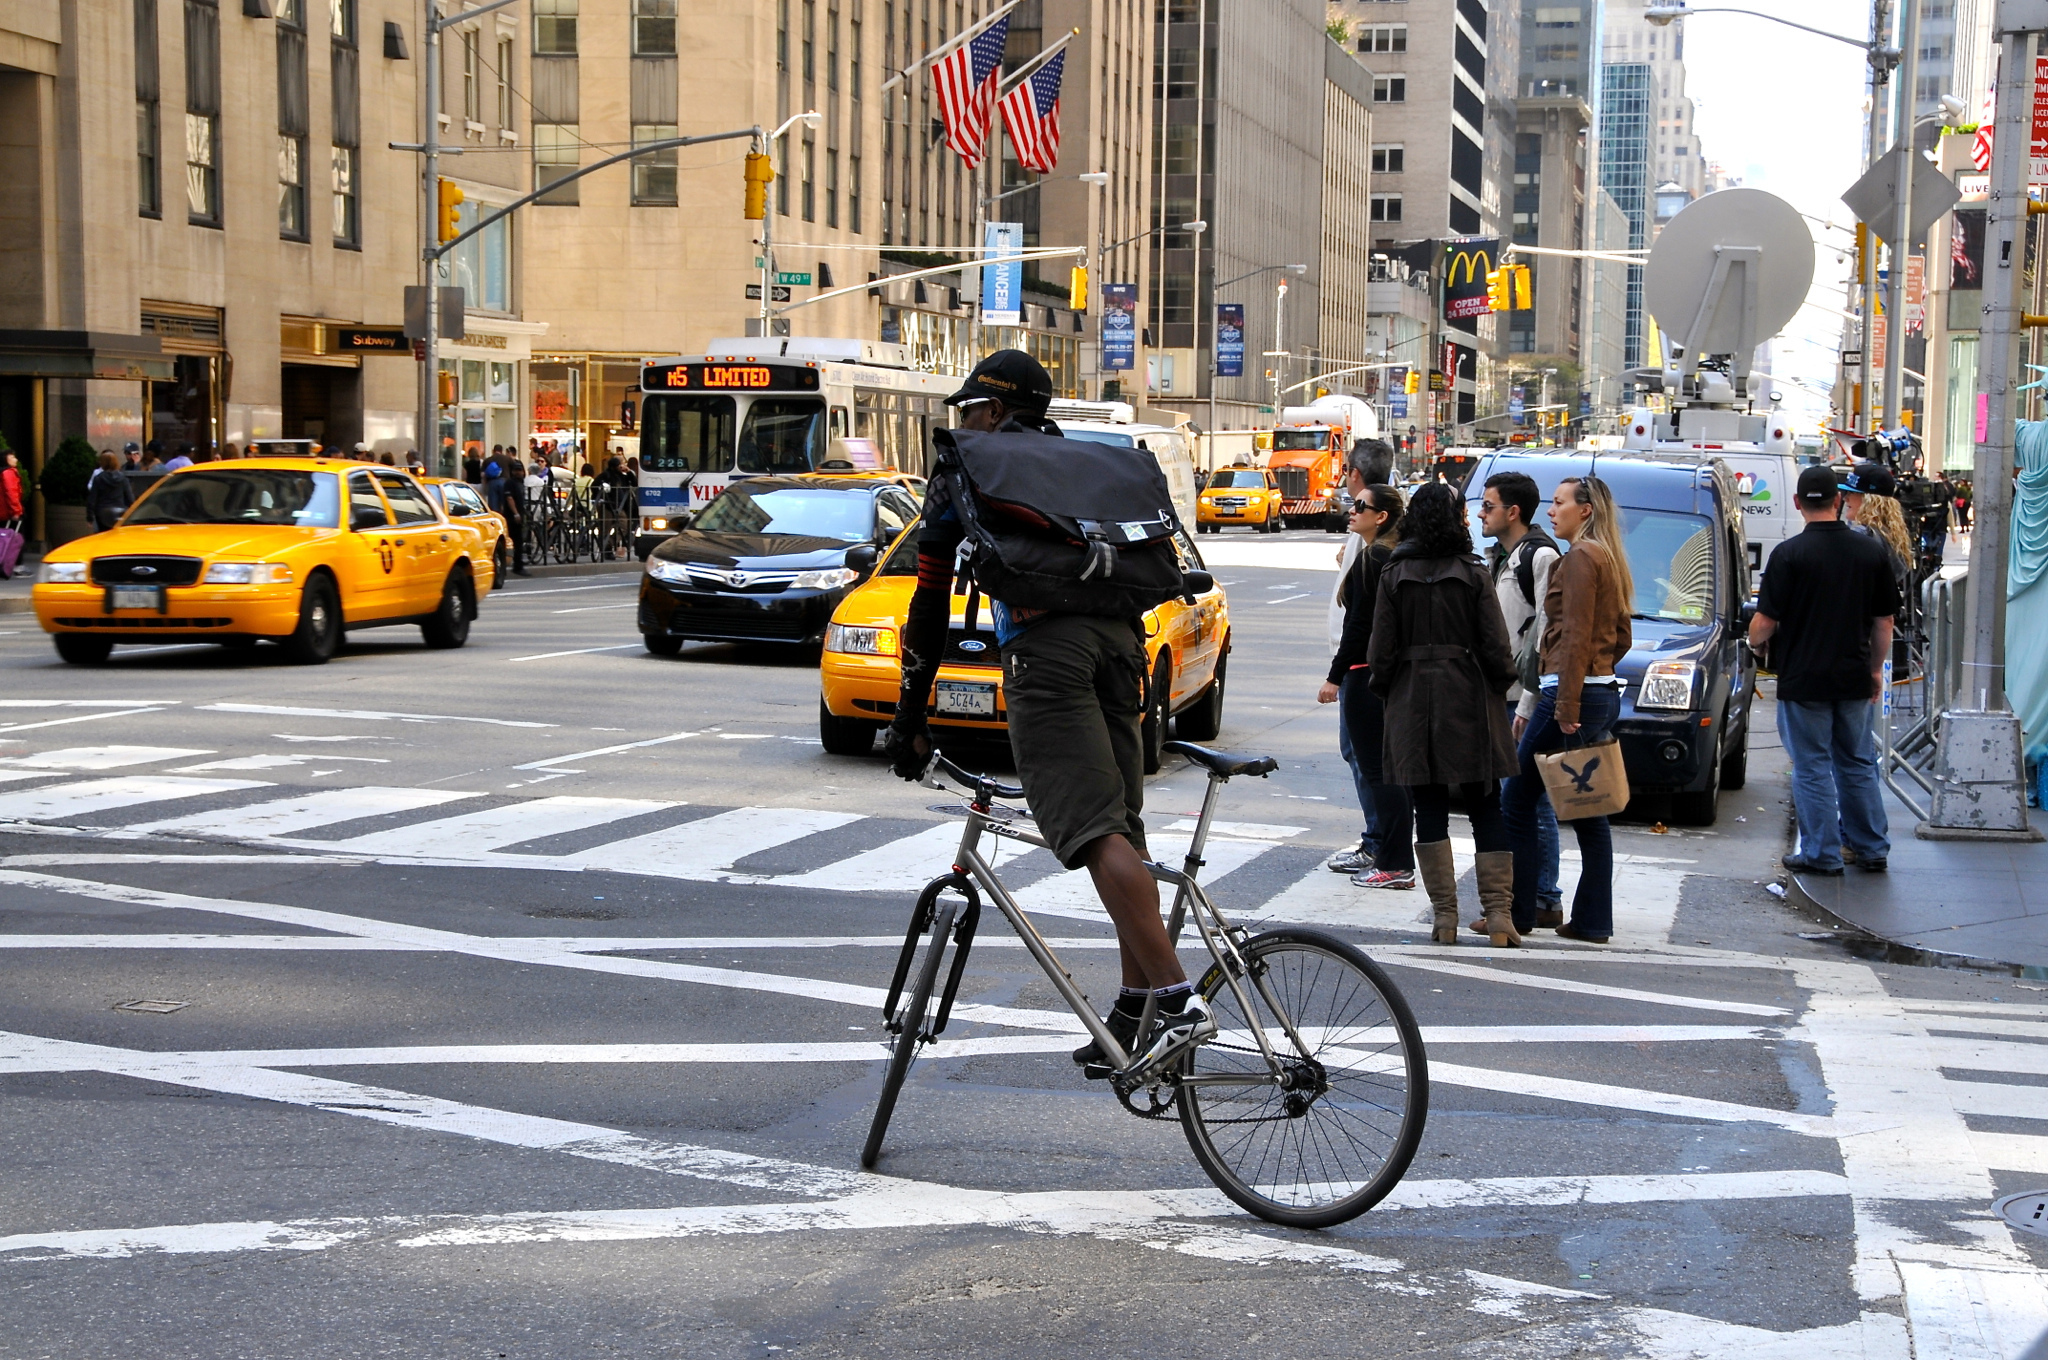 It's faster to bike in NYC than it is to take a cab during rush hour